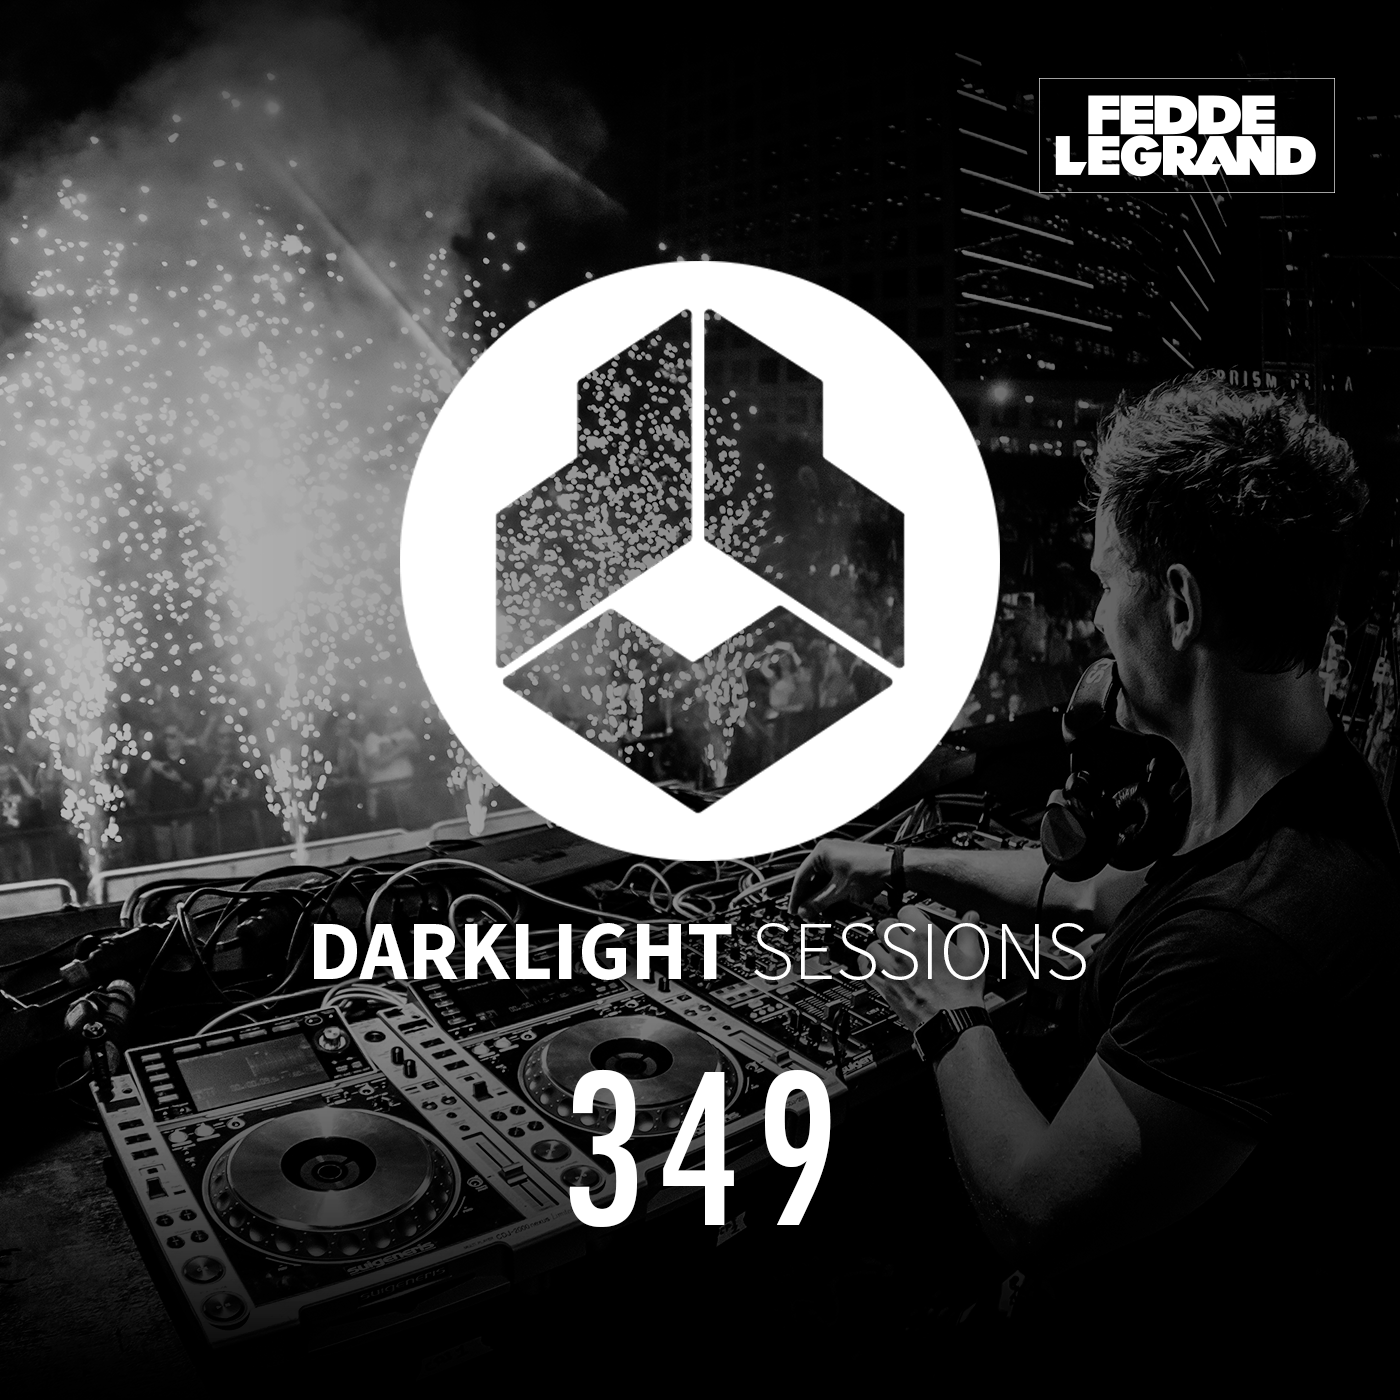 Darklight Sessions 349